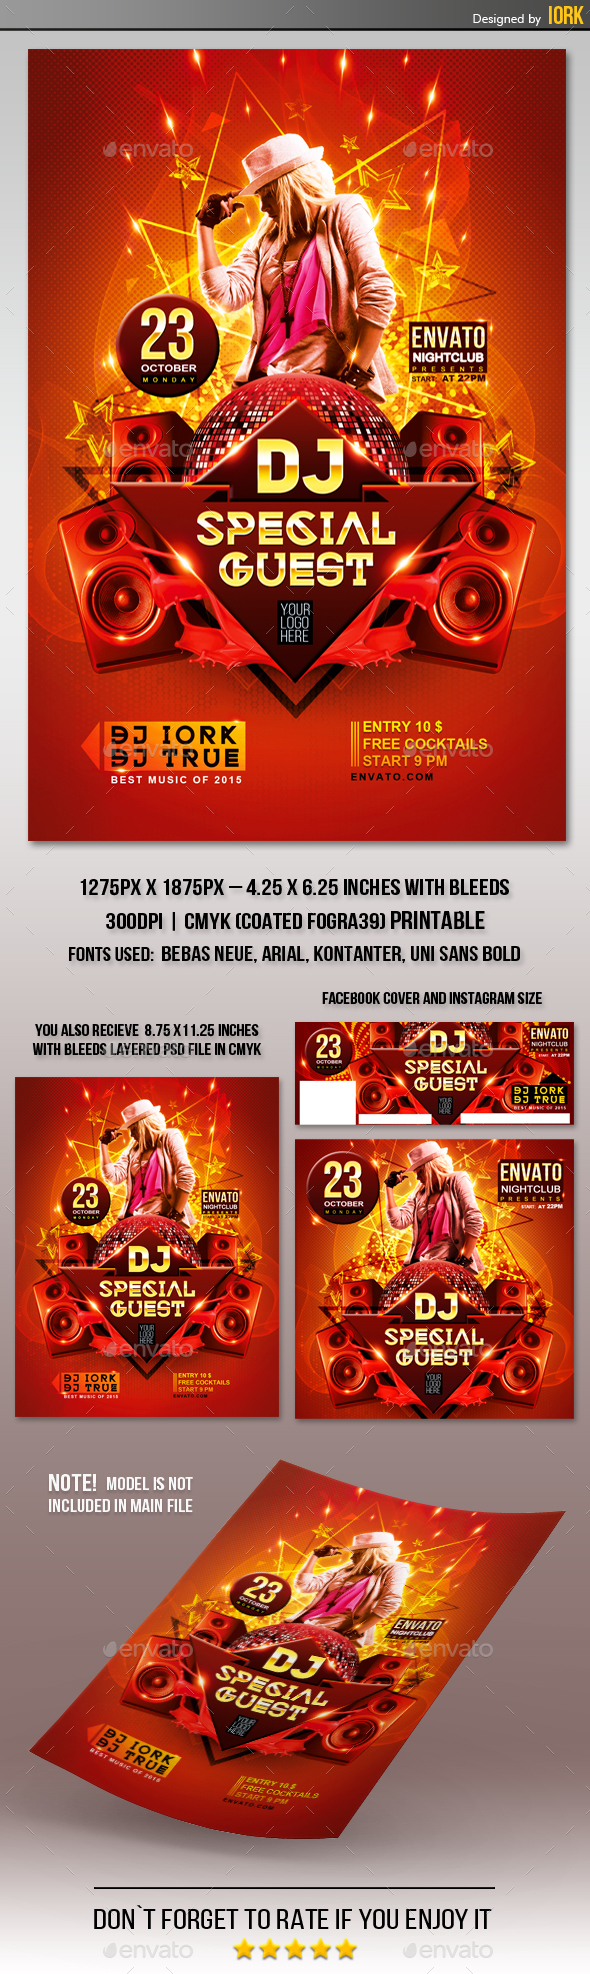 Dj Guest Party Flyer - Clubs & Parties Events